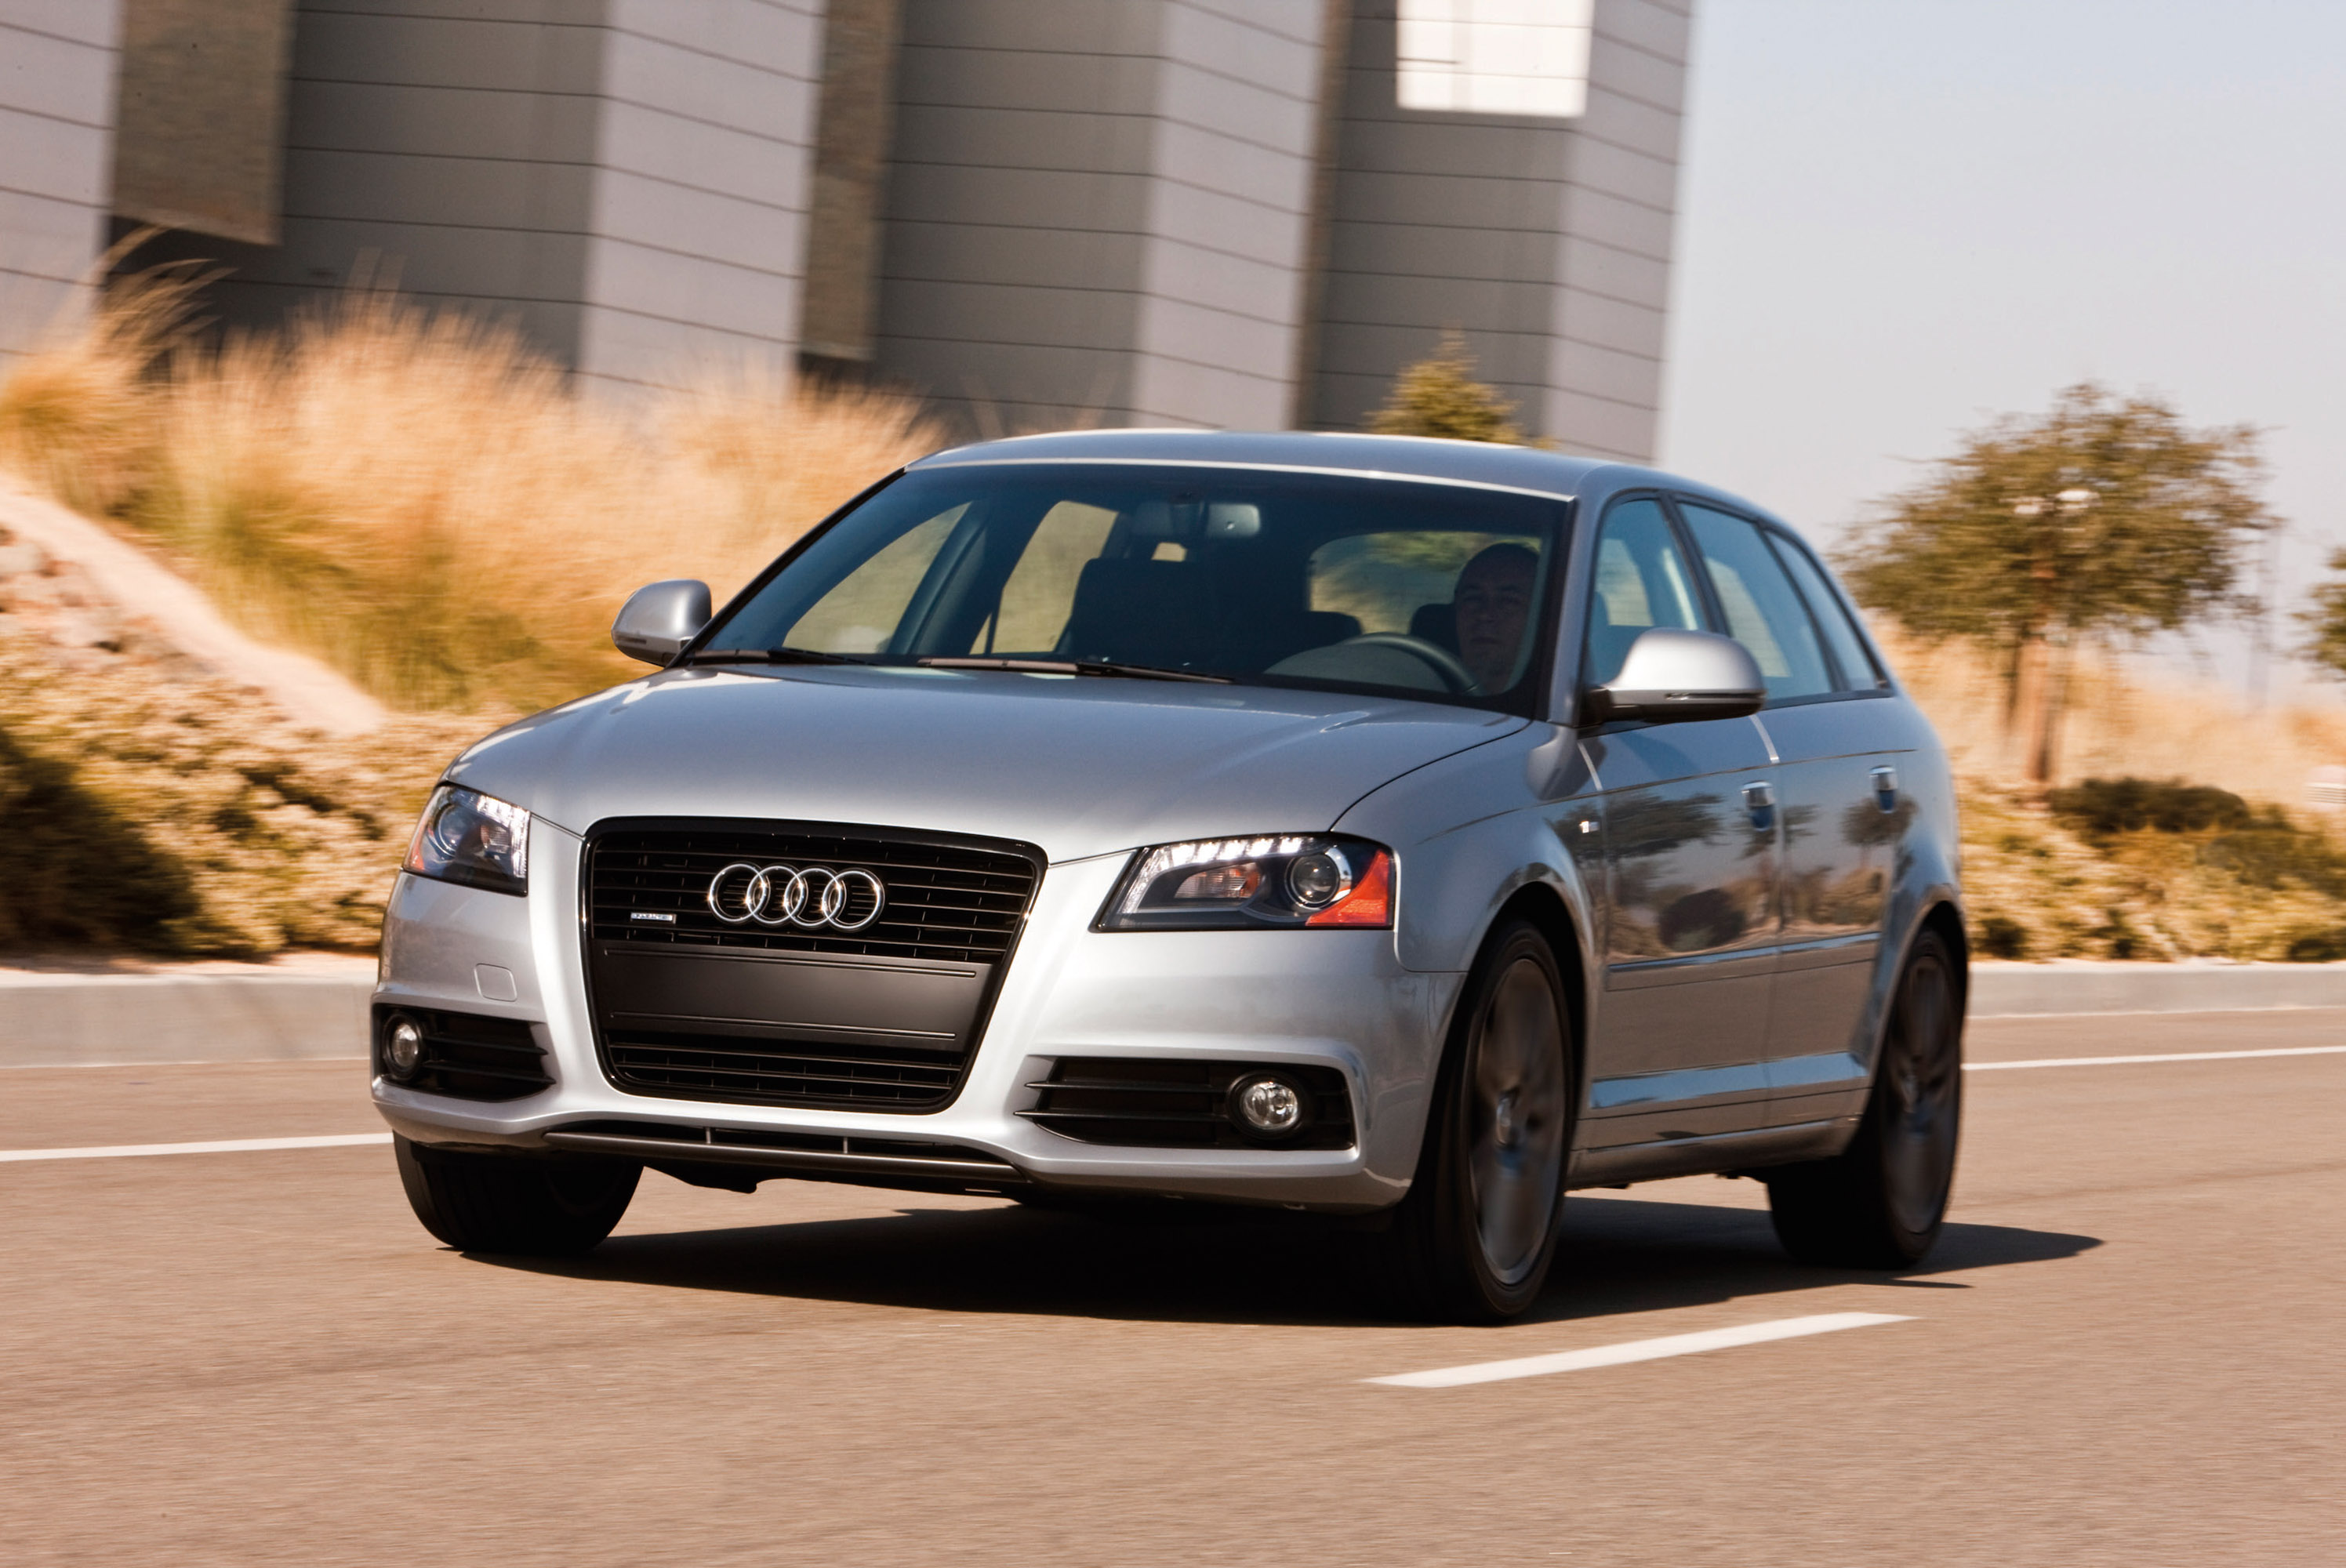 Index of /img/2012-audi-a3-2-0-tfsi-s-line